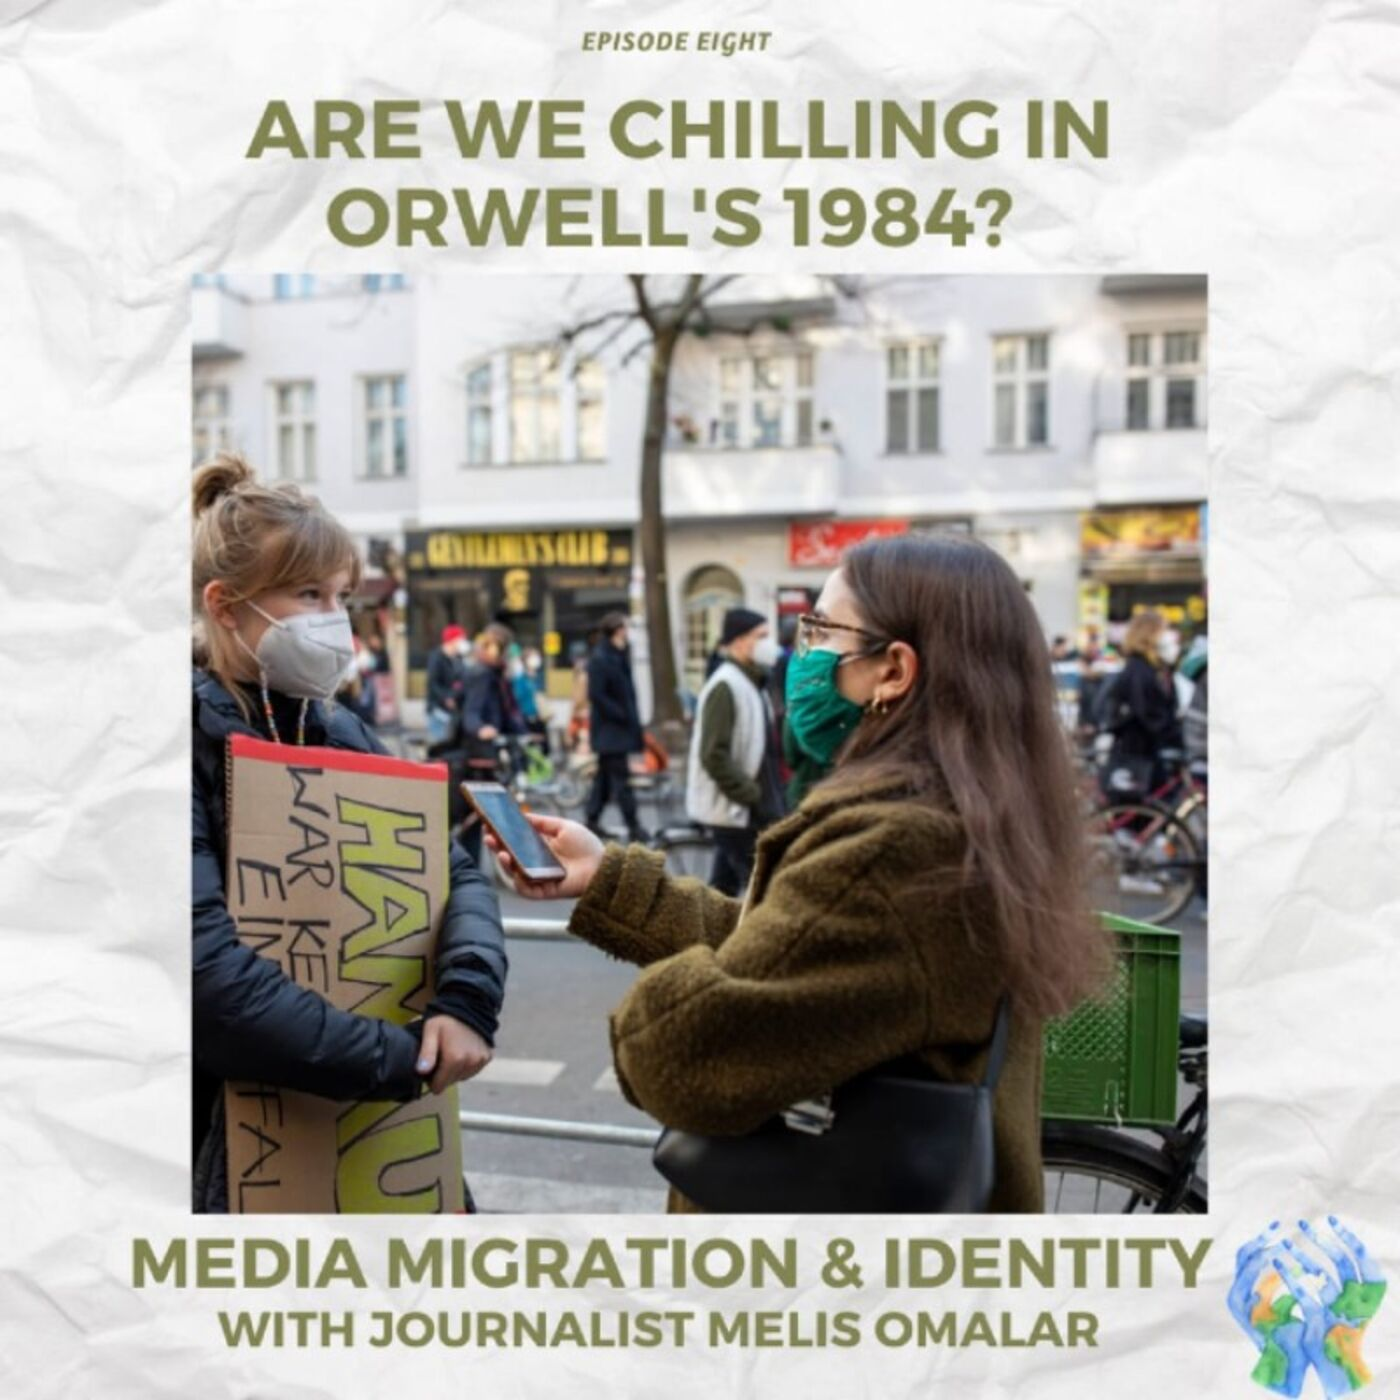 Are we chilling in Orwell's 1984? - Media, Migration & Identity with Melis Omalar